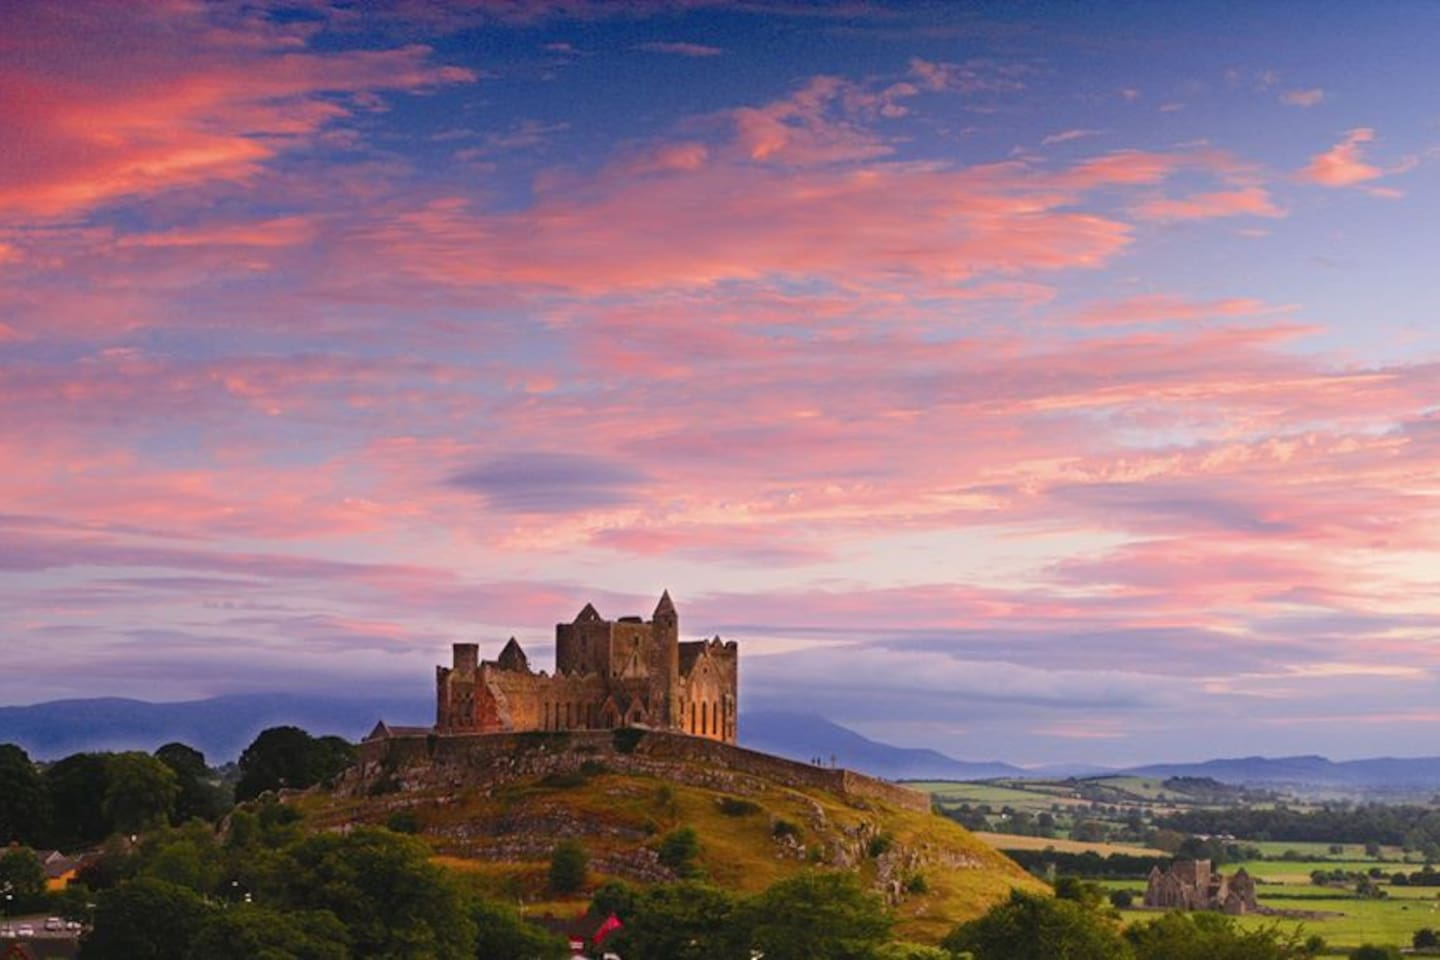 """5 mins from The Rock Of Cashel - According to The Lonely Planet """"The Rock of Cashel is one of Ireland's most spectacular archaeological sites, a prominent green hill, banded with limestone outcrops, rising from a grassy plain and bristling with ancient fortifications."""""""